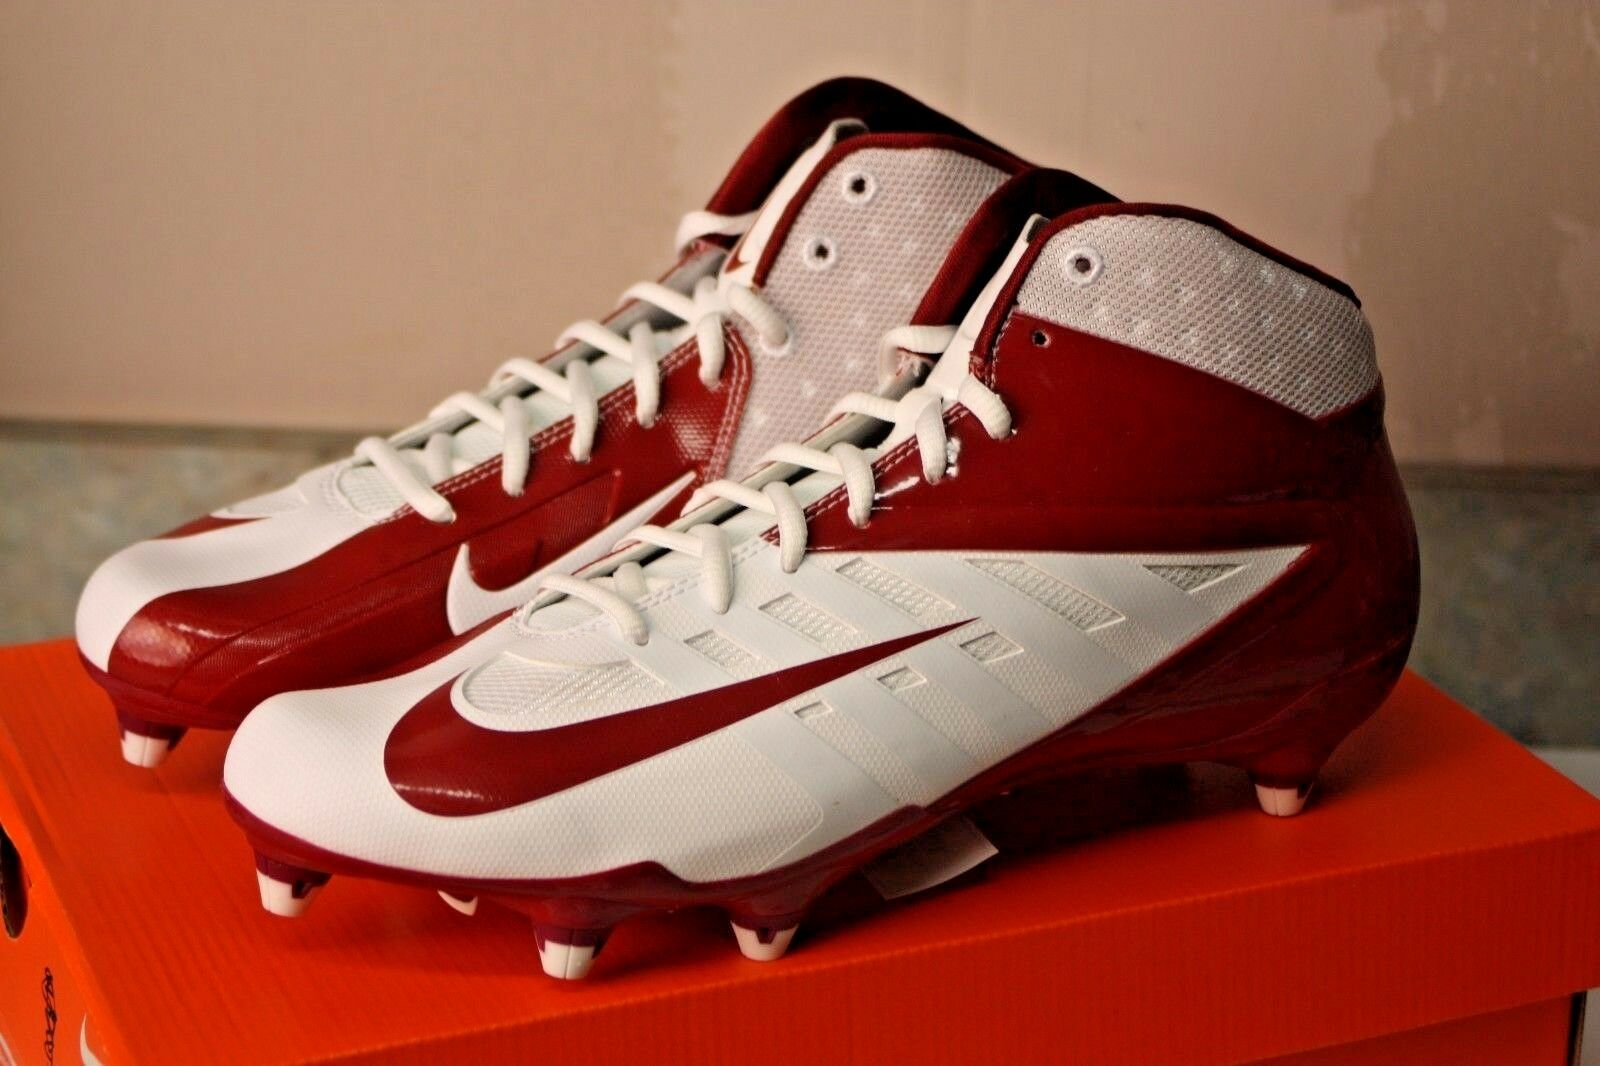 MEN'S NIKE VAPOR PRO 3/4 D FOOTBALL CLEATS 511343 167 RED CRIMSON WHITE Sz 12.5 best-selling model of the brand